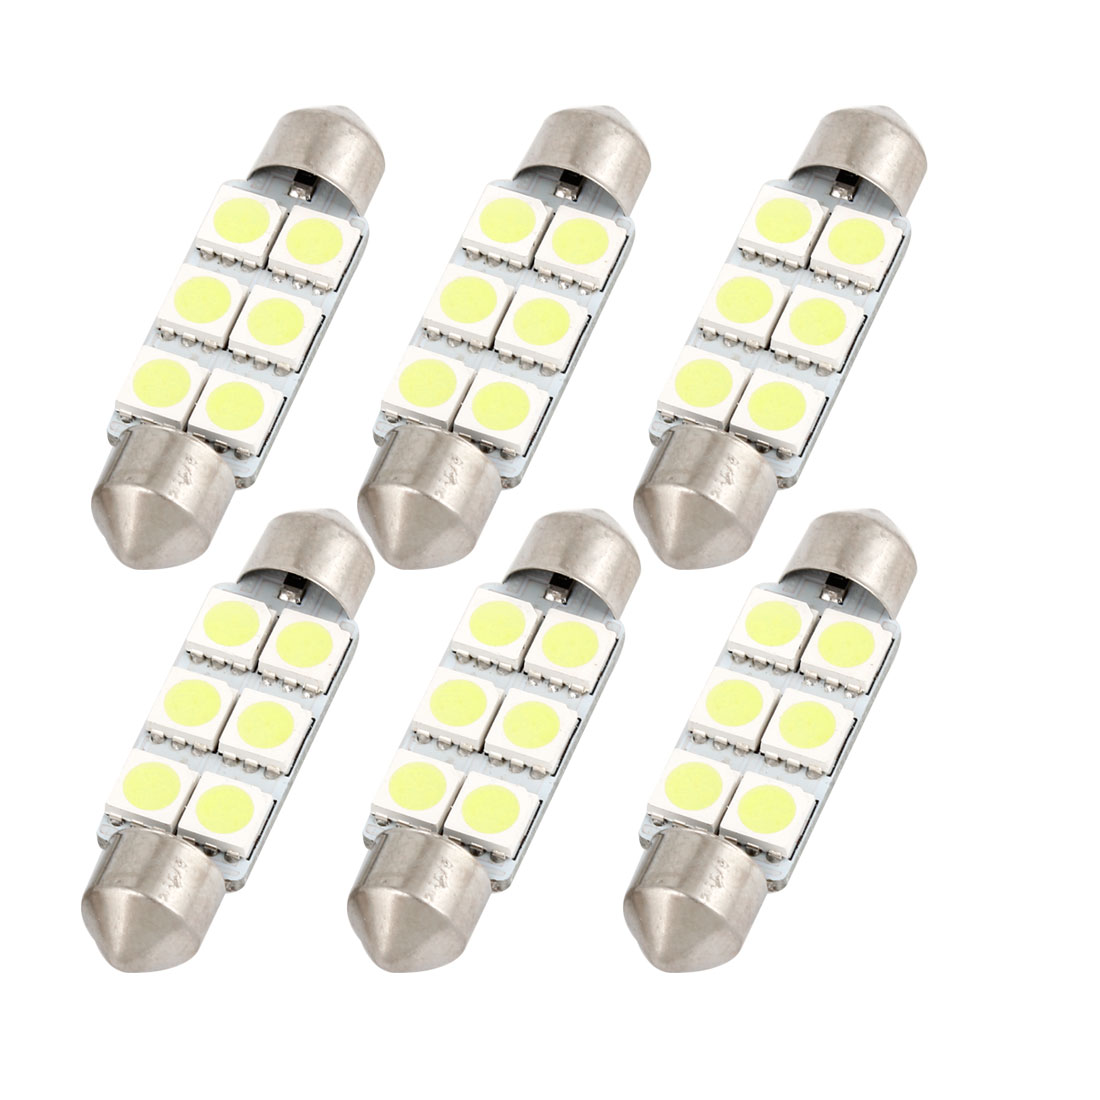 6PCS 41mm 6-LED 5050 White SMD Festoon Dome Light Map Lamp 211-2 212-2 Internal